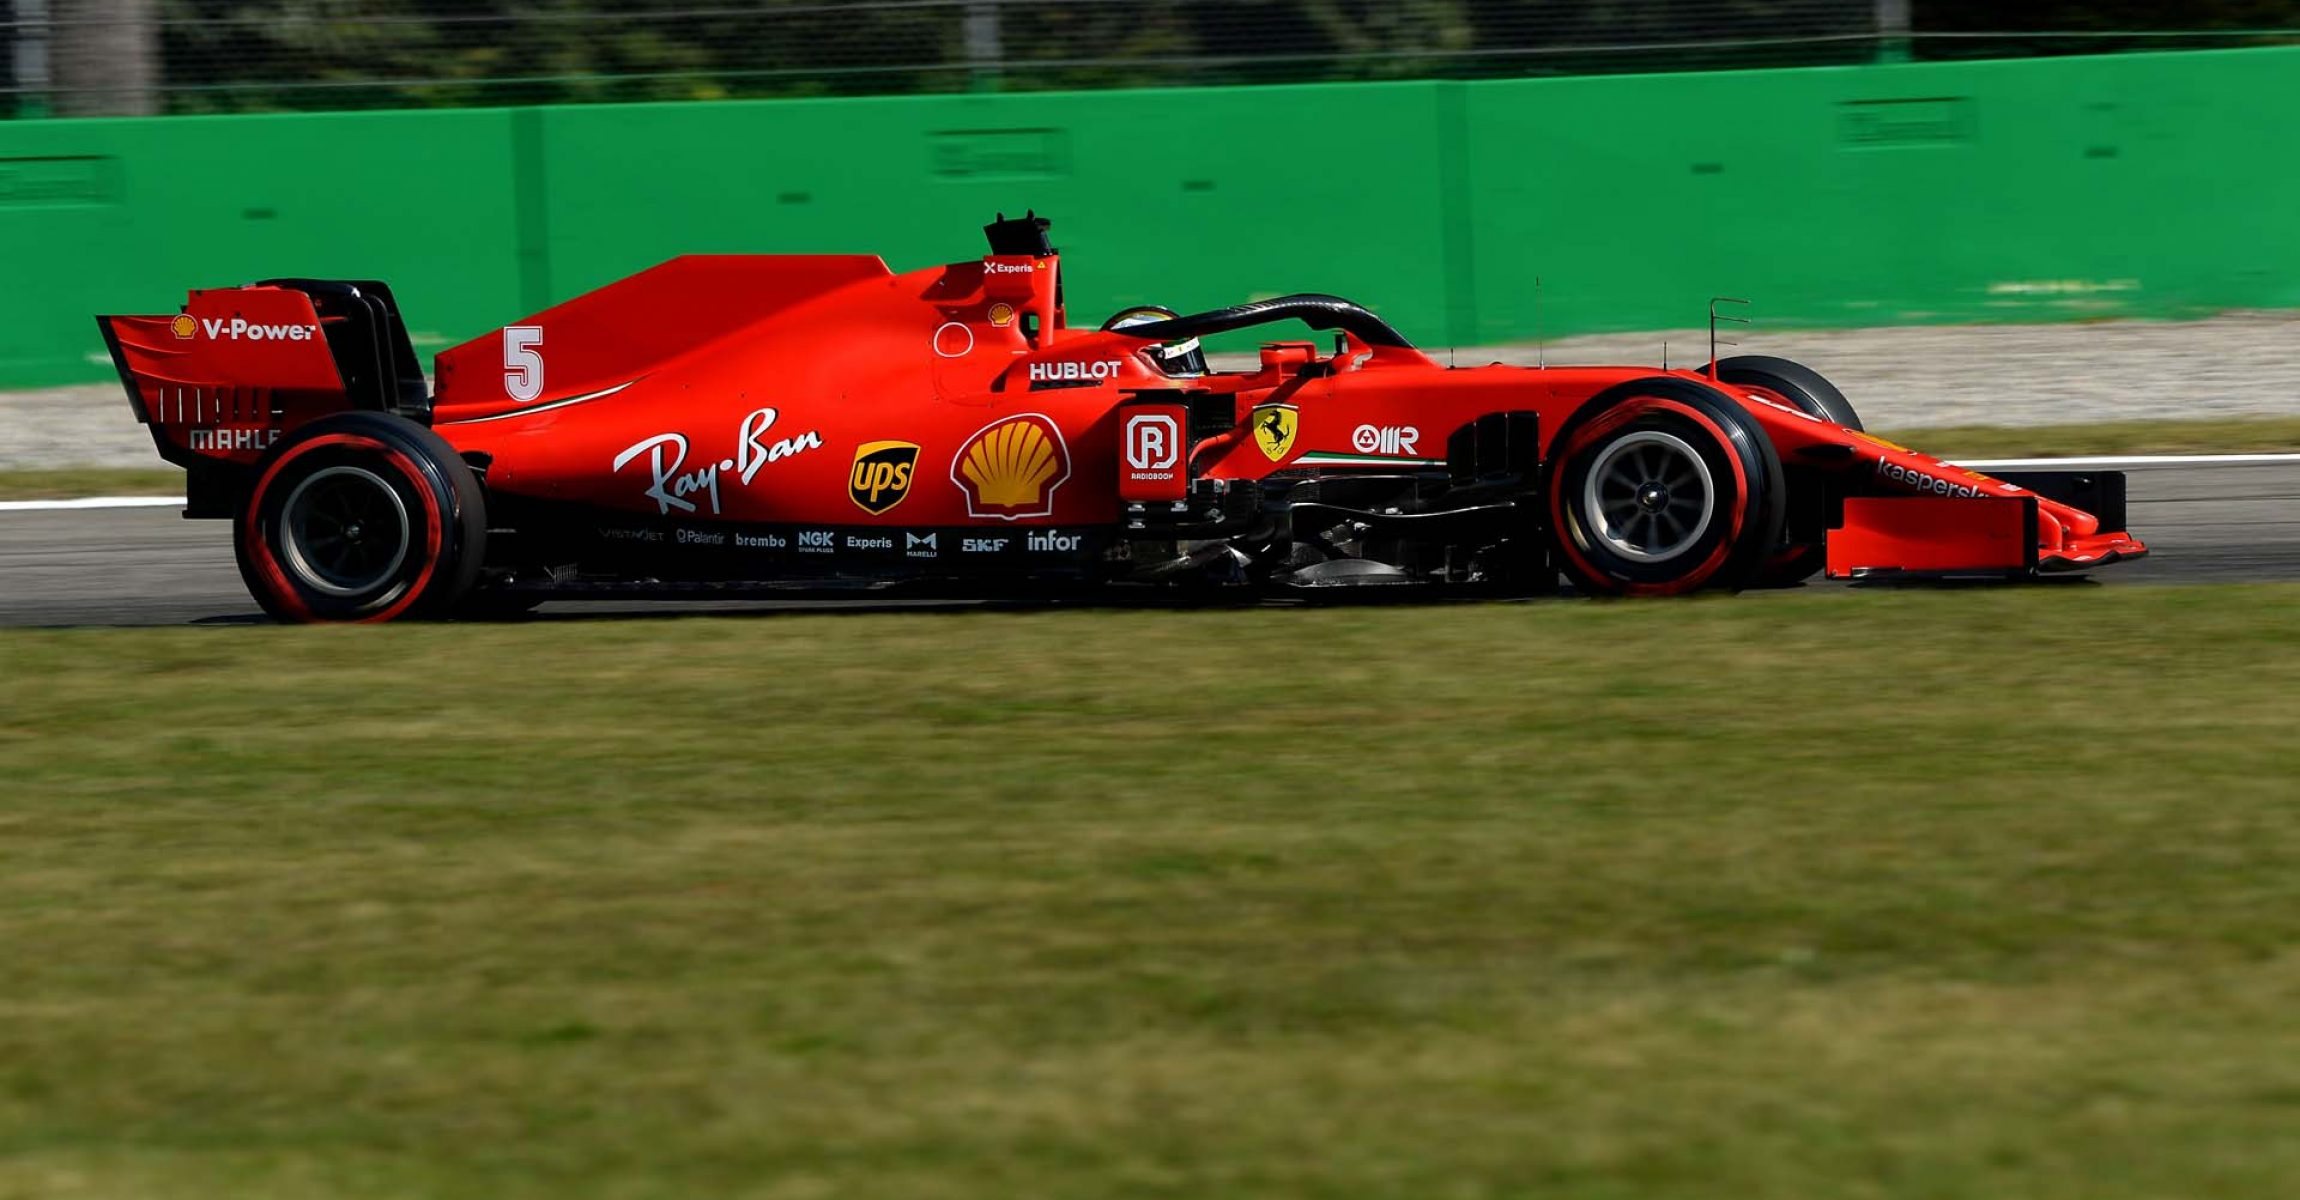 GP ITALIA F1/2020 -  VENERDÌ 04/09/2020       credit: @Scuderia Ferrari Press Office Sebastian Vettel